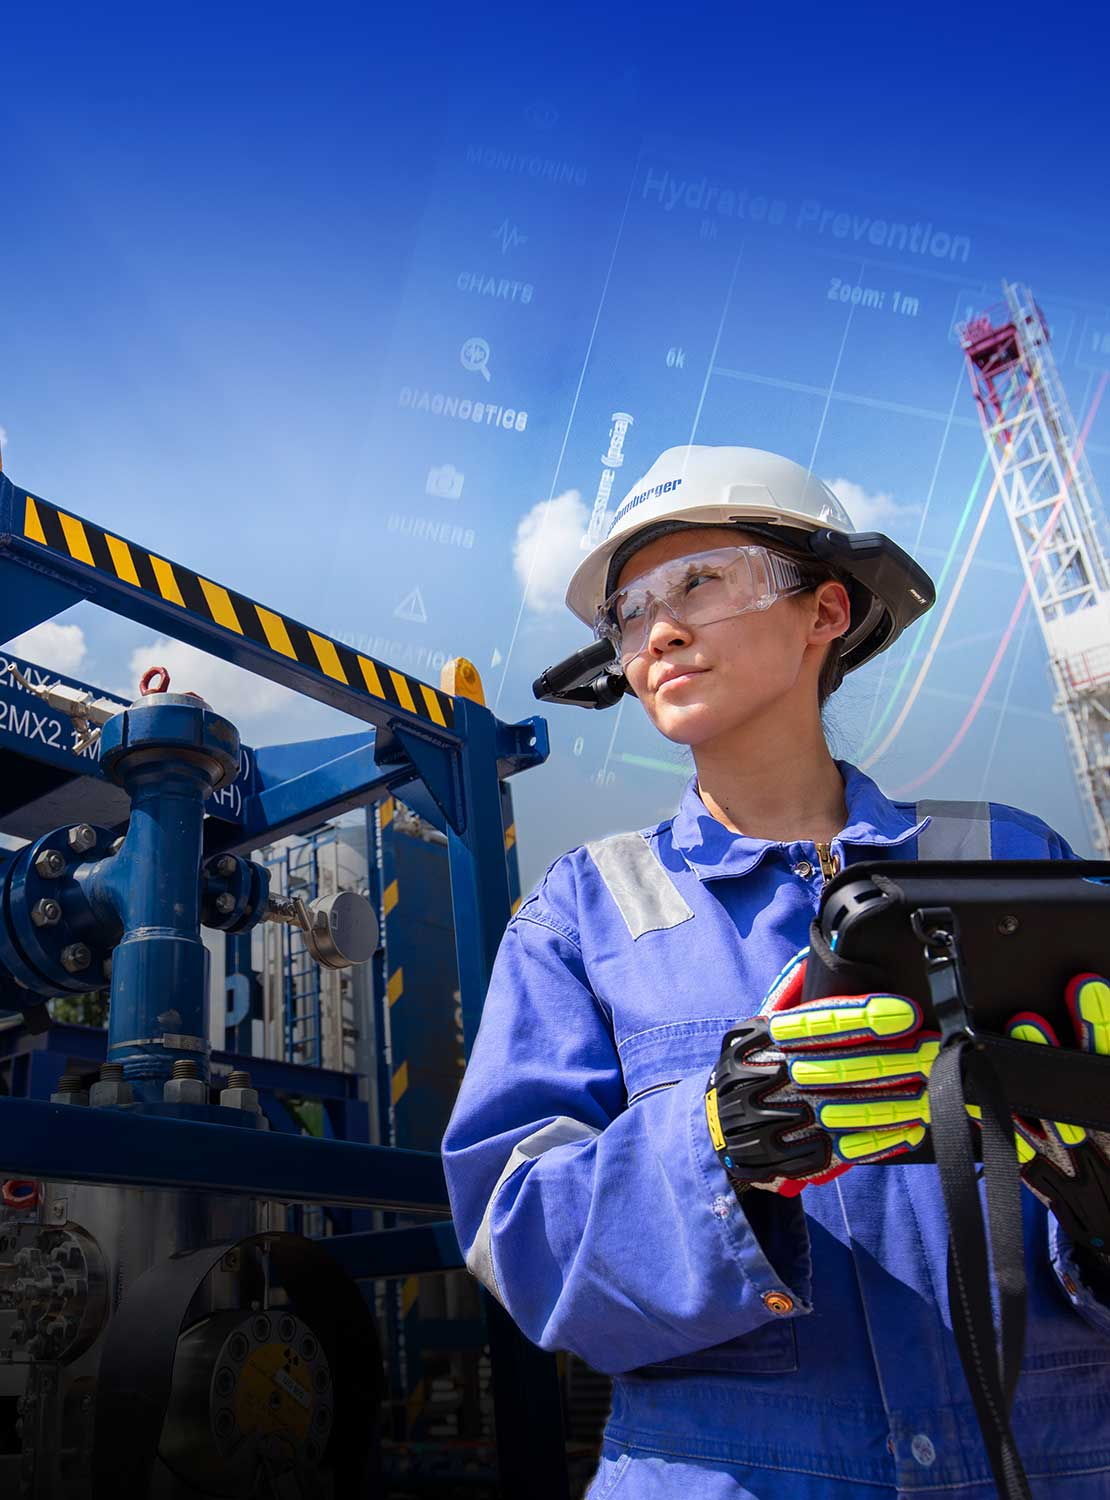 Image of a woman with an iPad in front of the equipment and the land rig